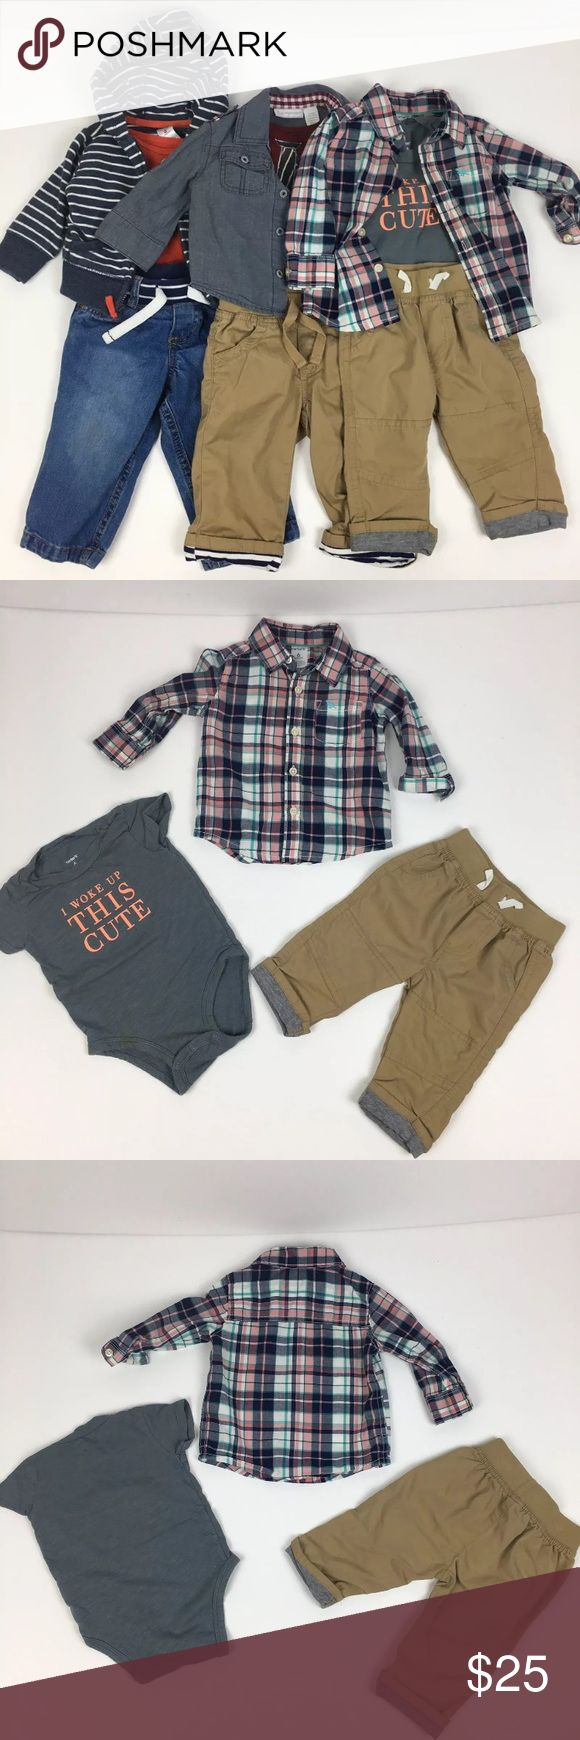 """Lot Of Baby Boy Outfits Carter's Old Navy 3-6 mos All in gently used condition - some have light stains, please see individual pics and let me know if you have any questions.   1 Carter's Striped Fox hoodie 6 mos  1 Carter's orange onesie 6 mos  1 Carter's stretch band blue jeans 9 mos  1 First Impressions chambray button down top 3-6 mos  1 Circo tie onesie 3-6 mos  1 Circo khaki cargo pants 3-6 mos  1 Carter's plaid button down top 6 mos  1 Carter's """"I woke up this cute"""" onesie 6 mos  1…"""